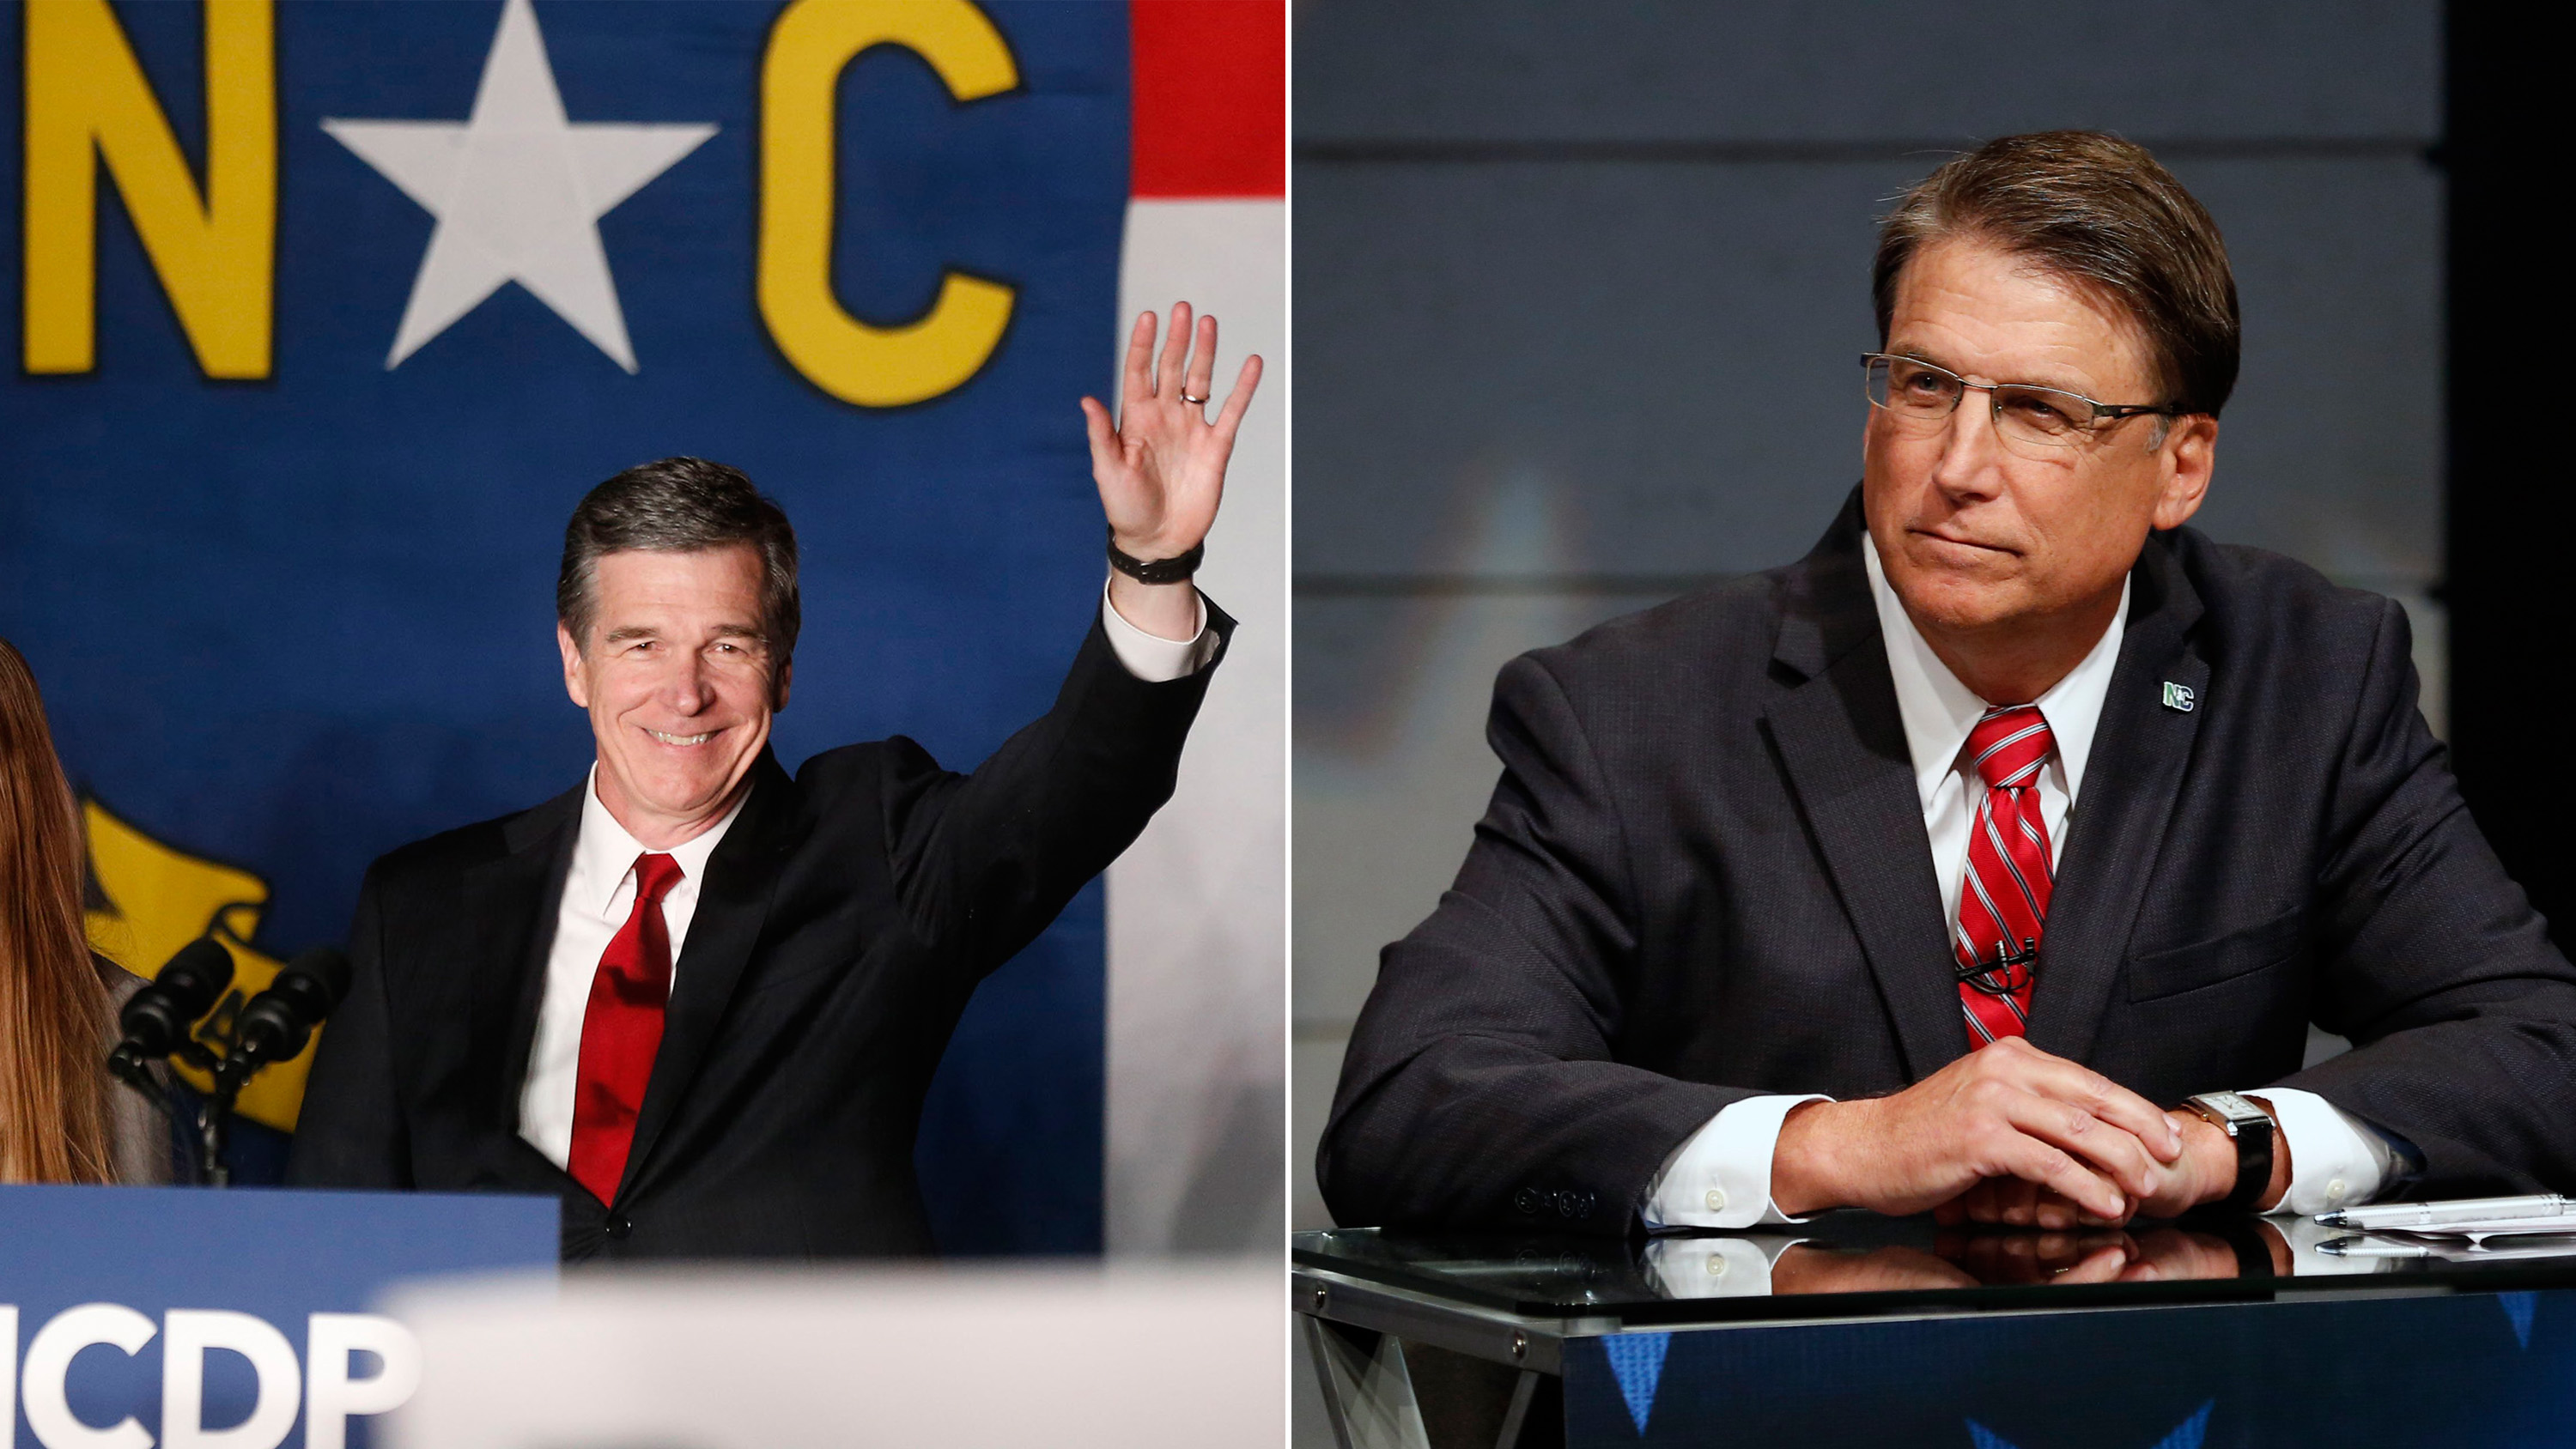 Roy Cooper greets supporters during an election party hosted by the North Carolina Democratic Party on Nov. 8, 2016; Pat McCrory, Republican candidate for Governor of North Carolina, during a debate at WRAL studios in Raleigh, N.C., on Oct. 18, 2016.